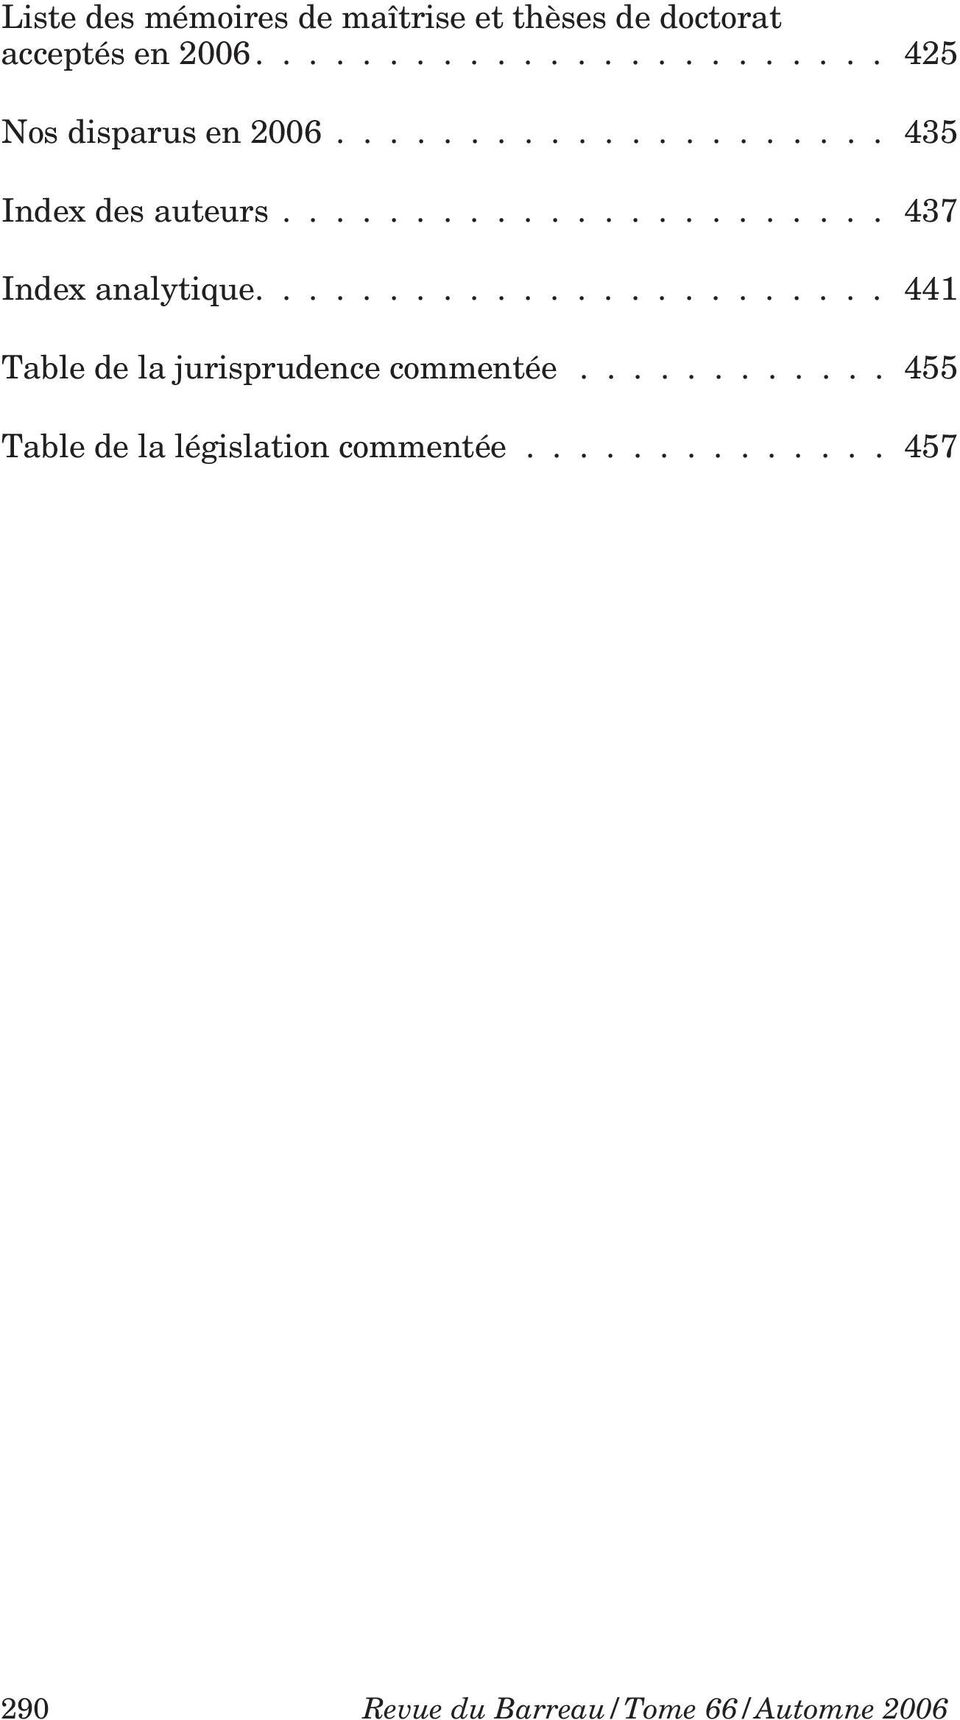 ...................... 437 Index analytique........................ 441 Table de la jurisprudence commentée.